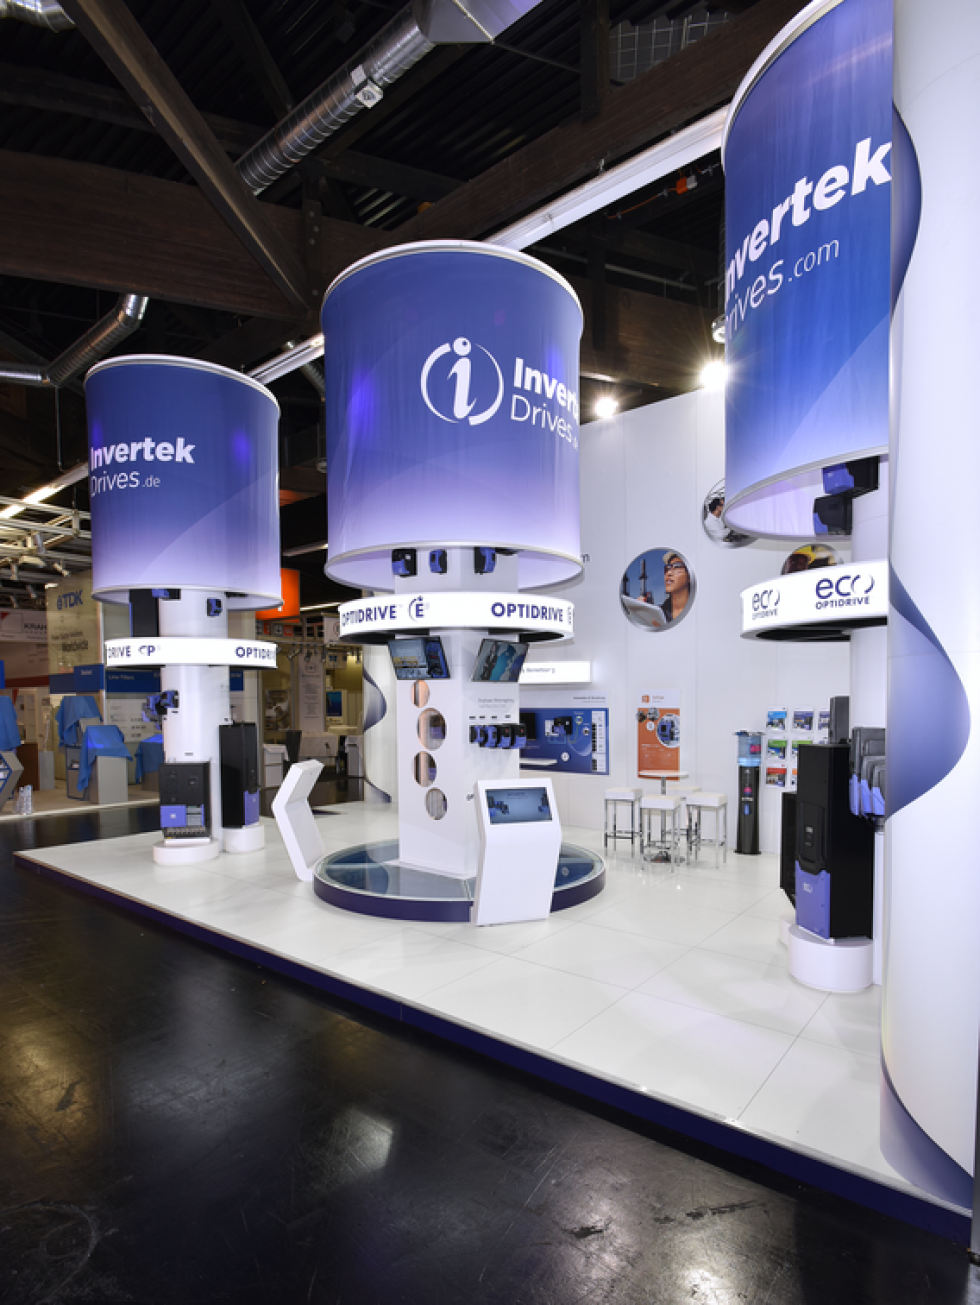 bespoke exhibition stand - invertek